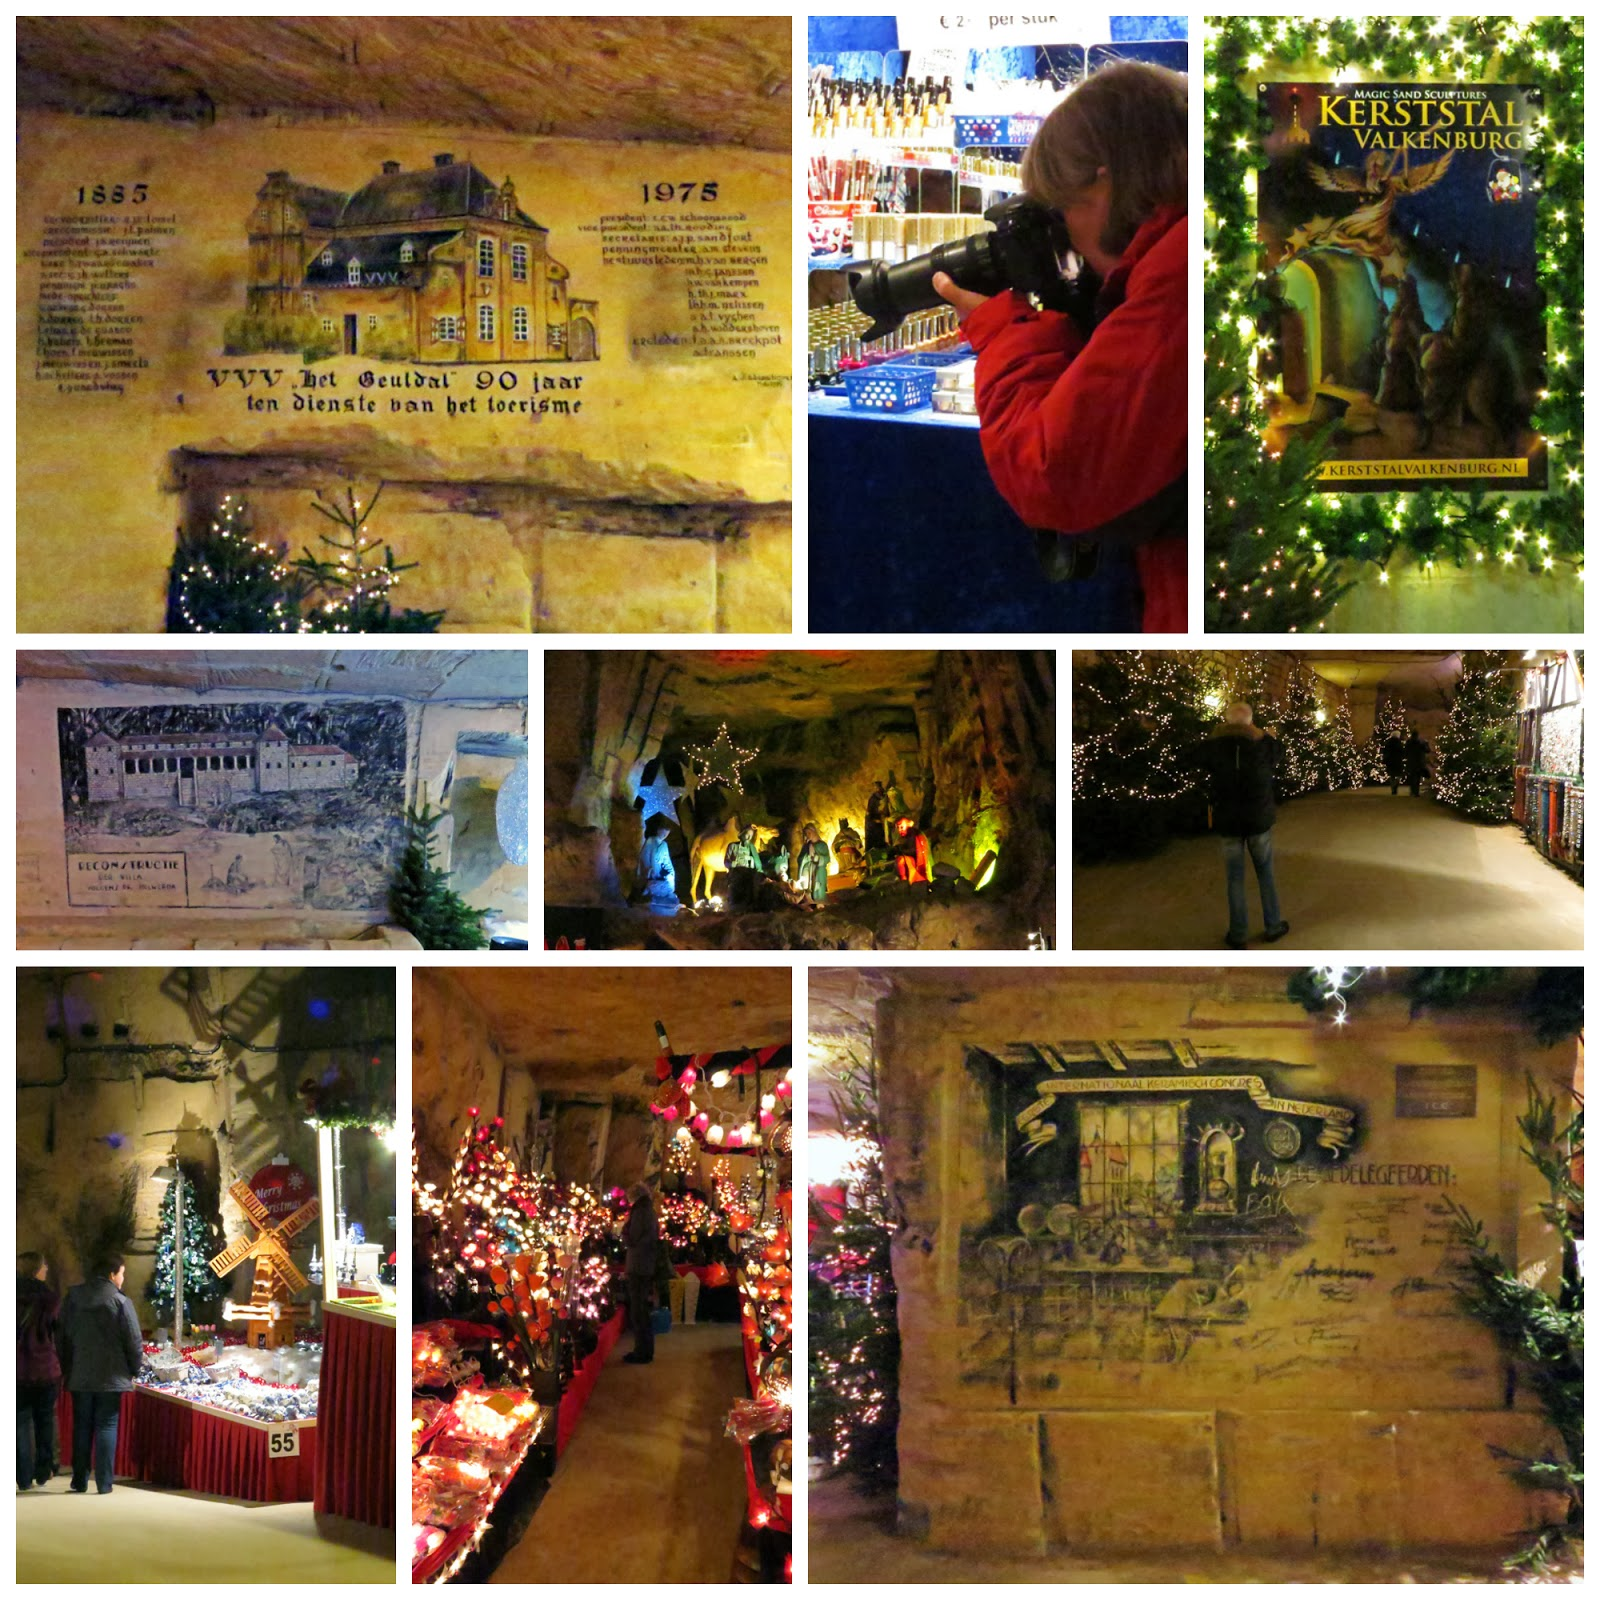 In Soul: The Christmas Market in the Valkenburg Caves